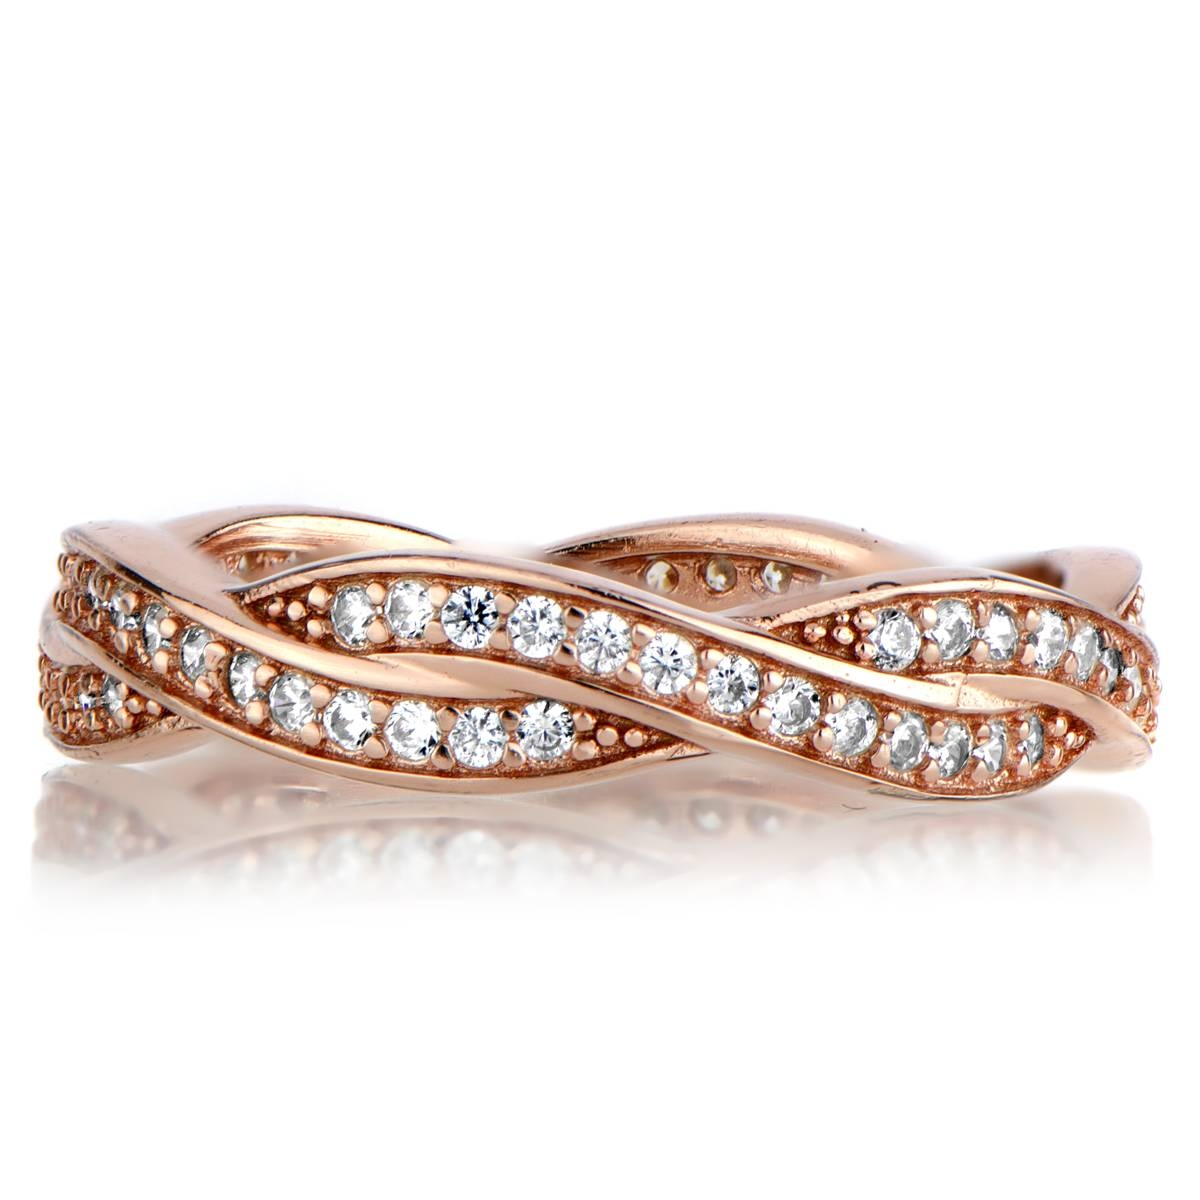 Rose Gold Twisted Cz Wedding Ring Band Regarding Infinity Twist Wedding Bands (View 13 of 15)